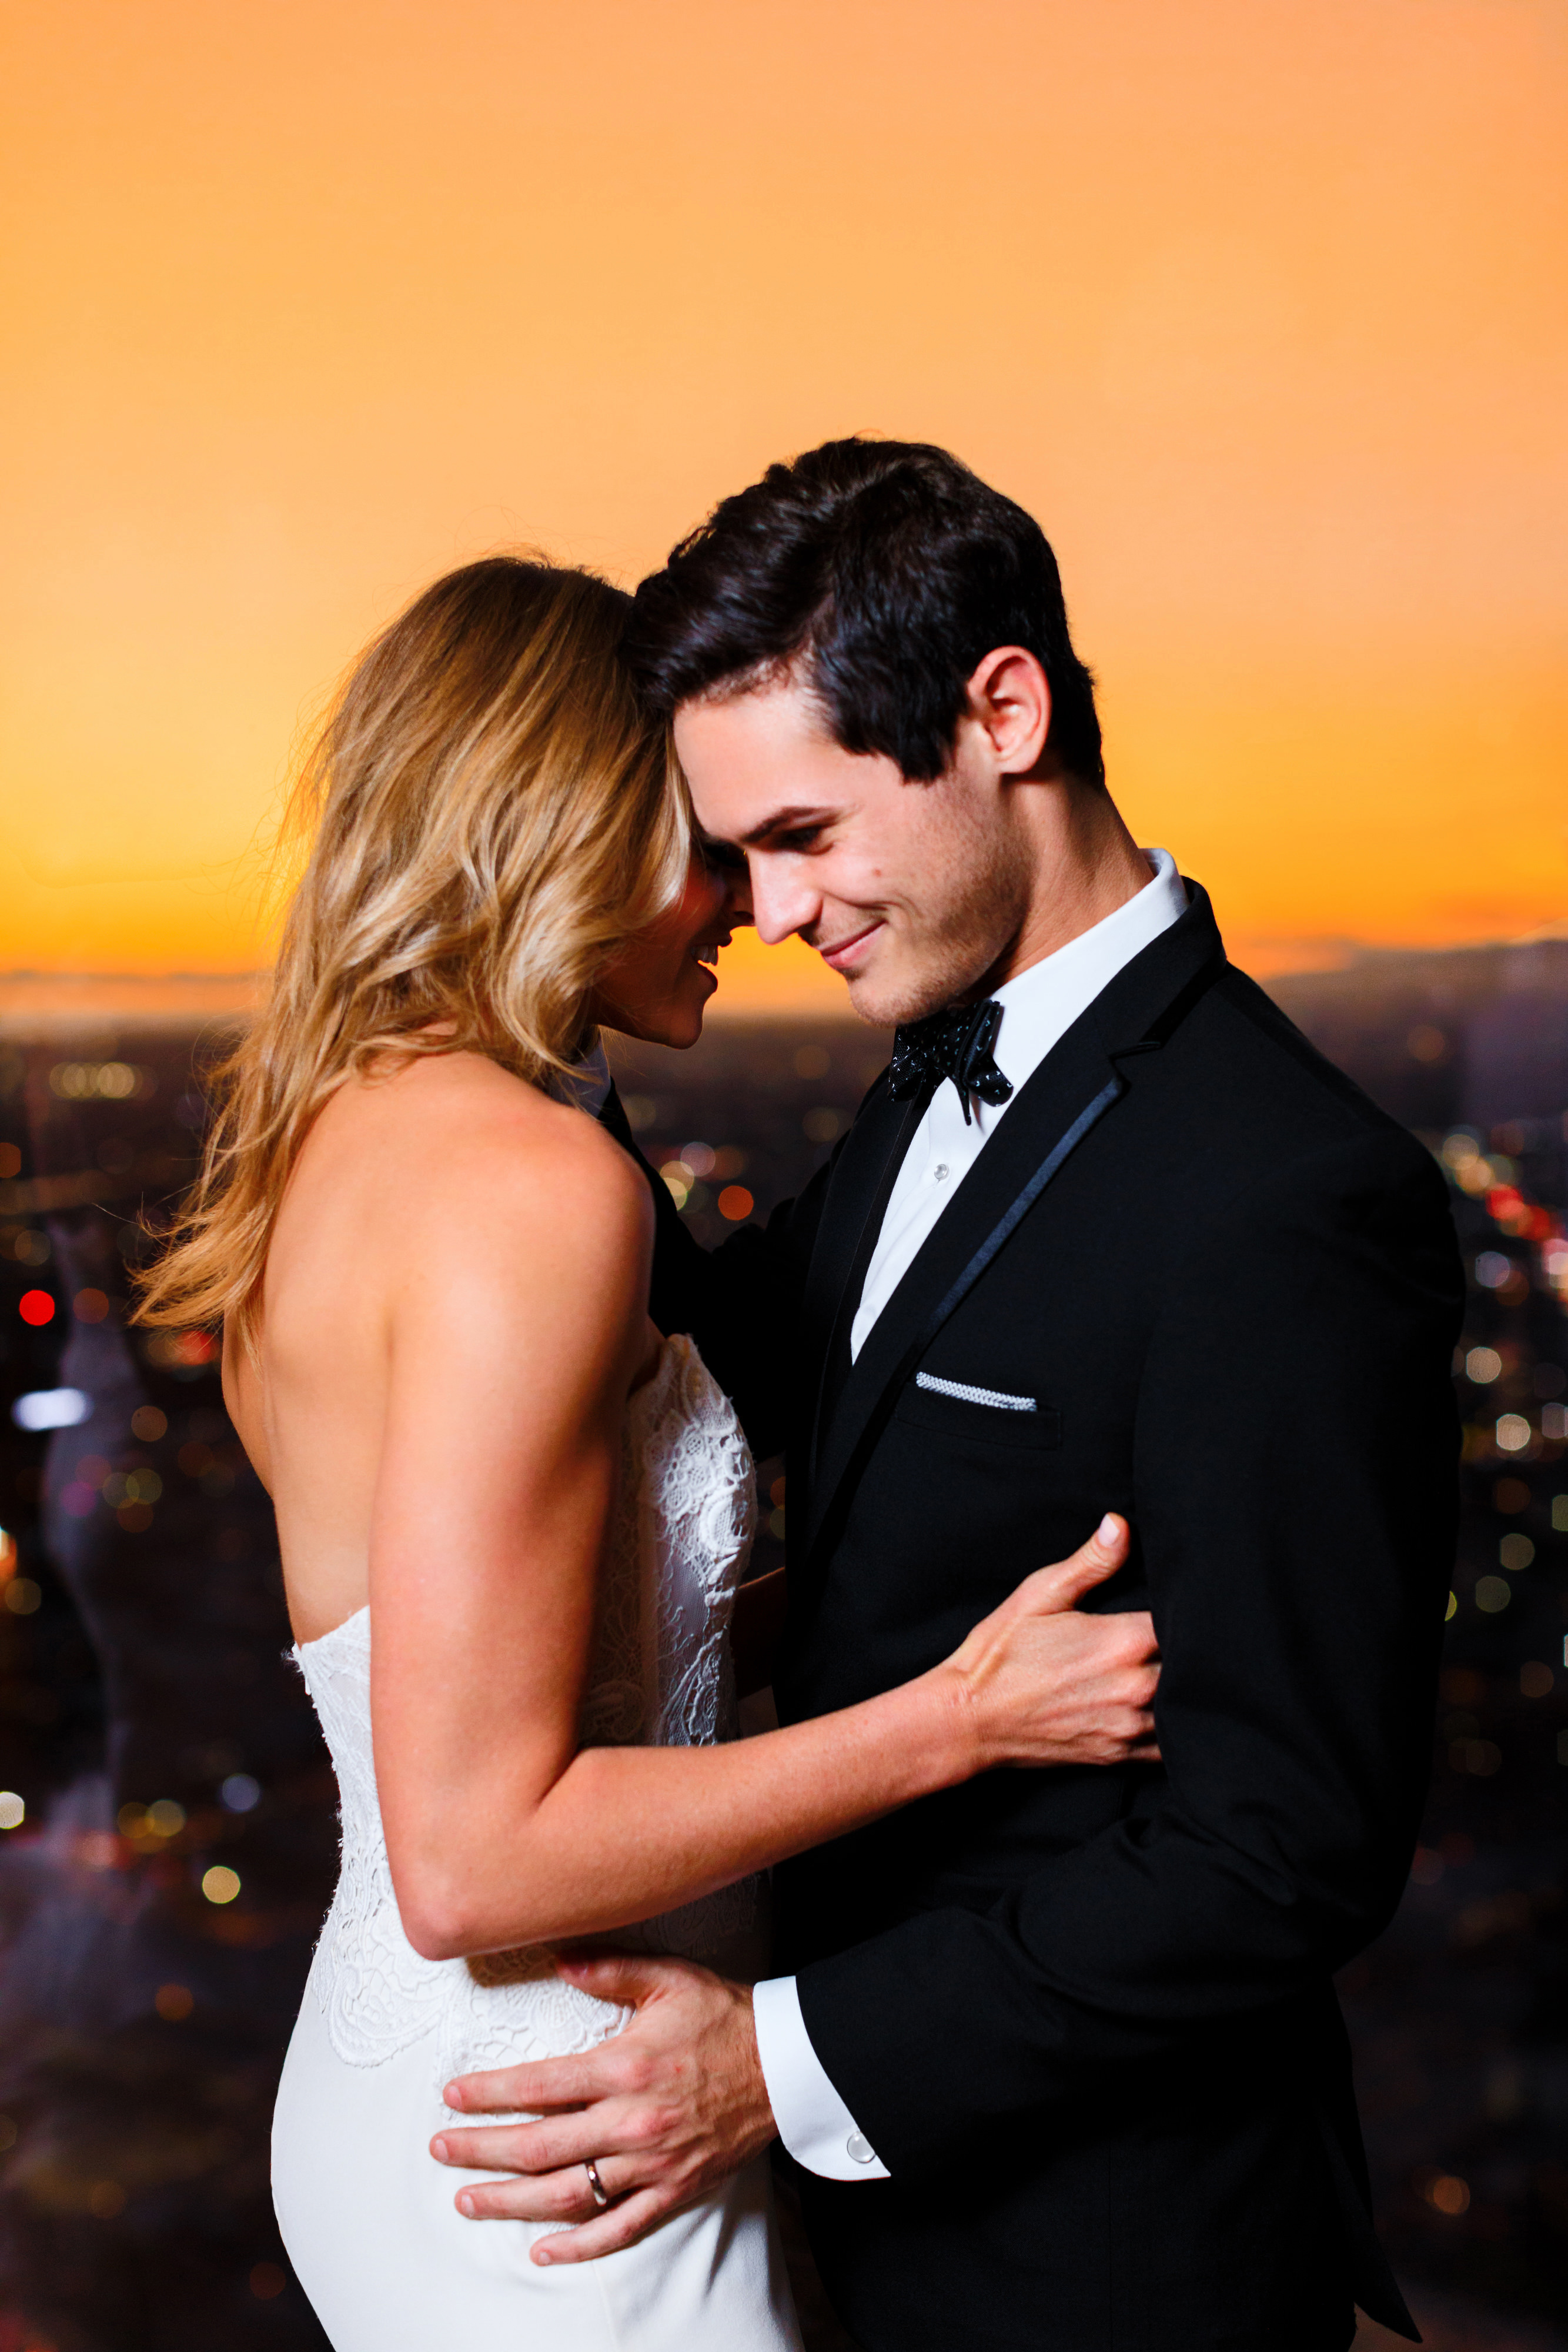 Intercontinental-DTLA-shoot-bride-and-groom-with-orange-sky-behind-them-bride-in-a-mermaid-gown-and-groom-in-a-black-tuxedo